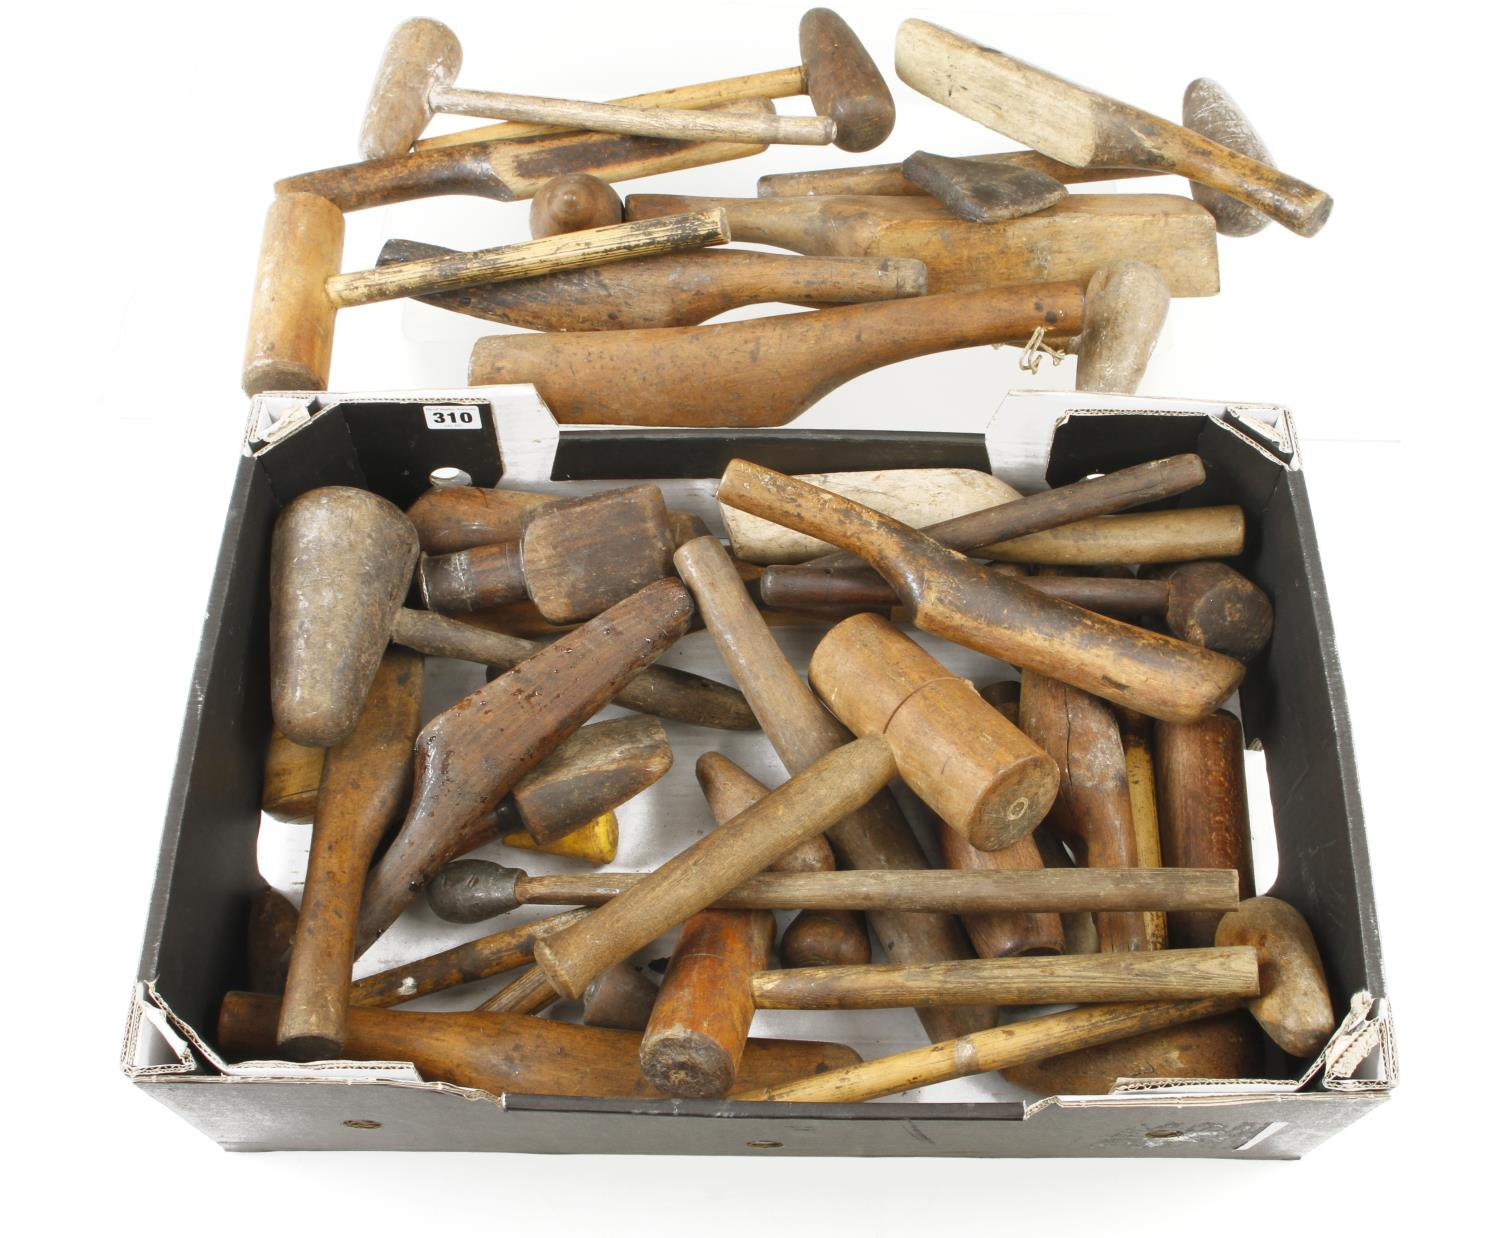 A box of plumber's tools G